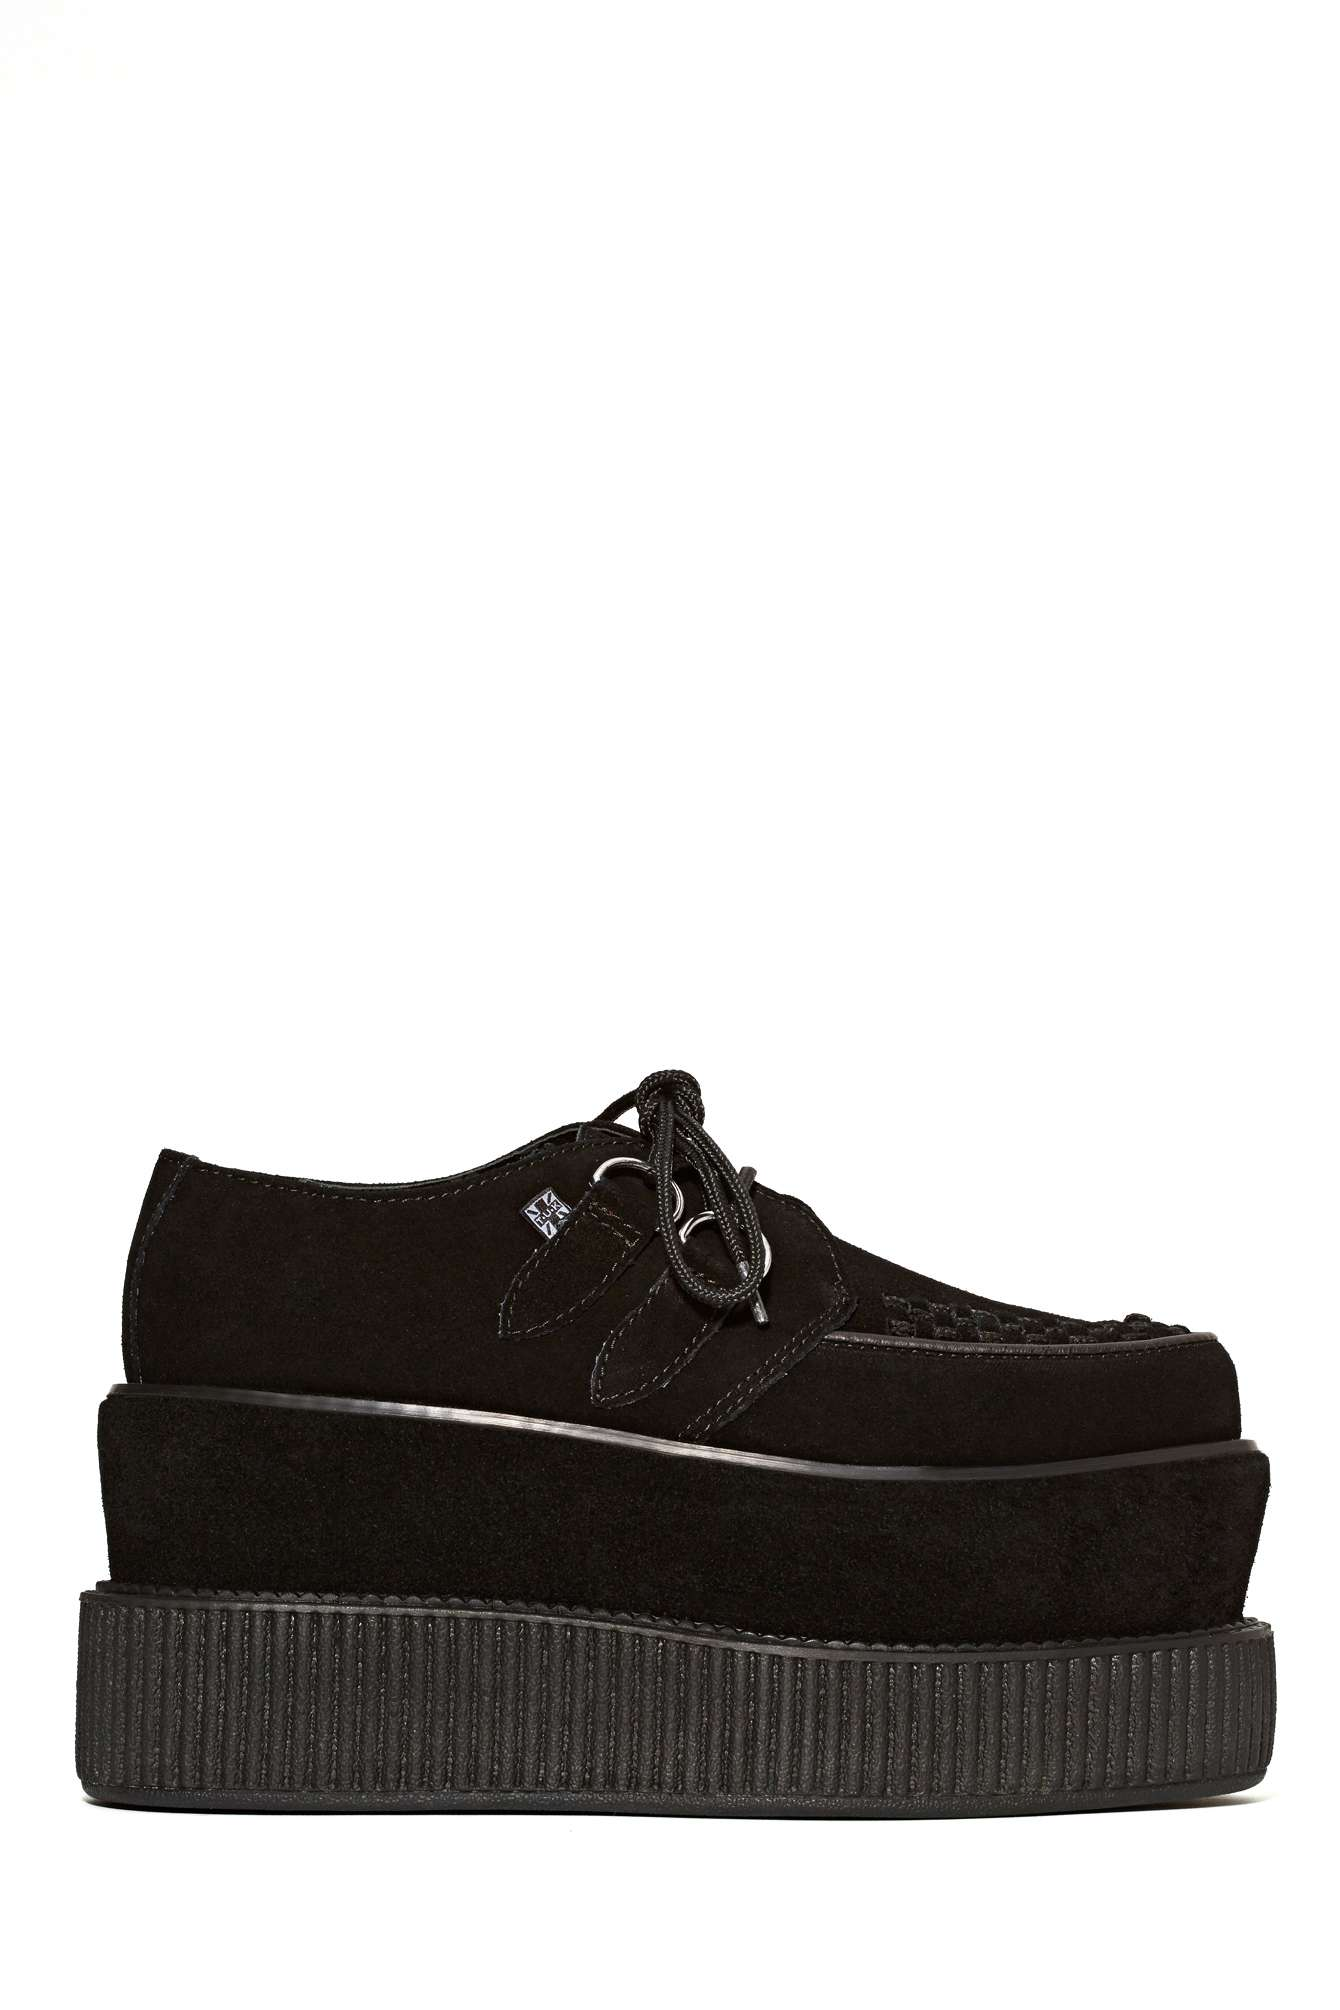 T.u.k. double stacked creeper